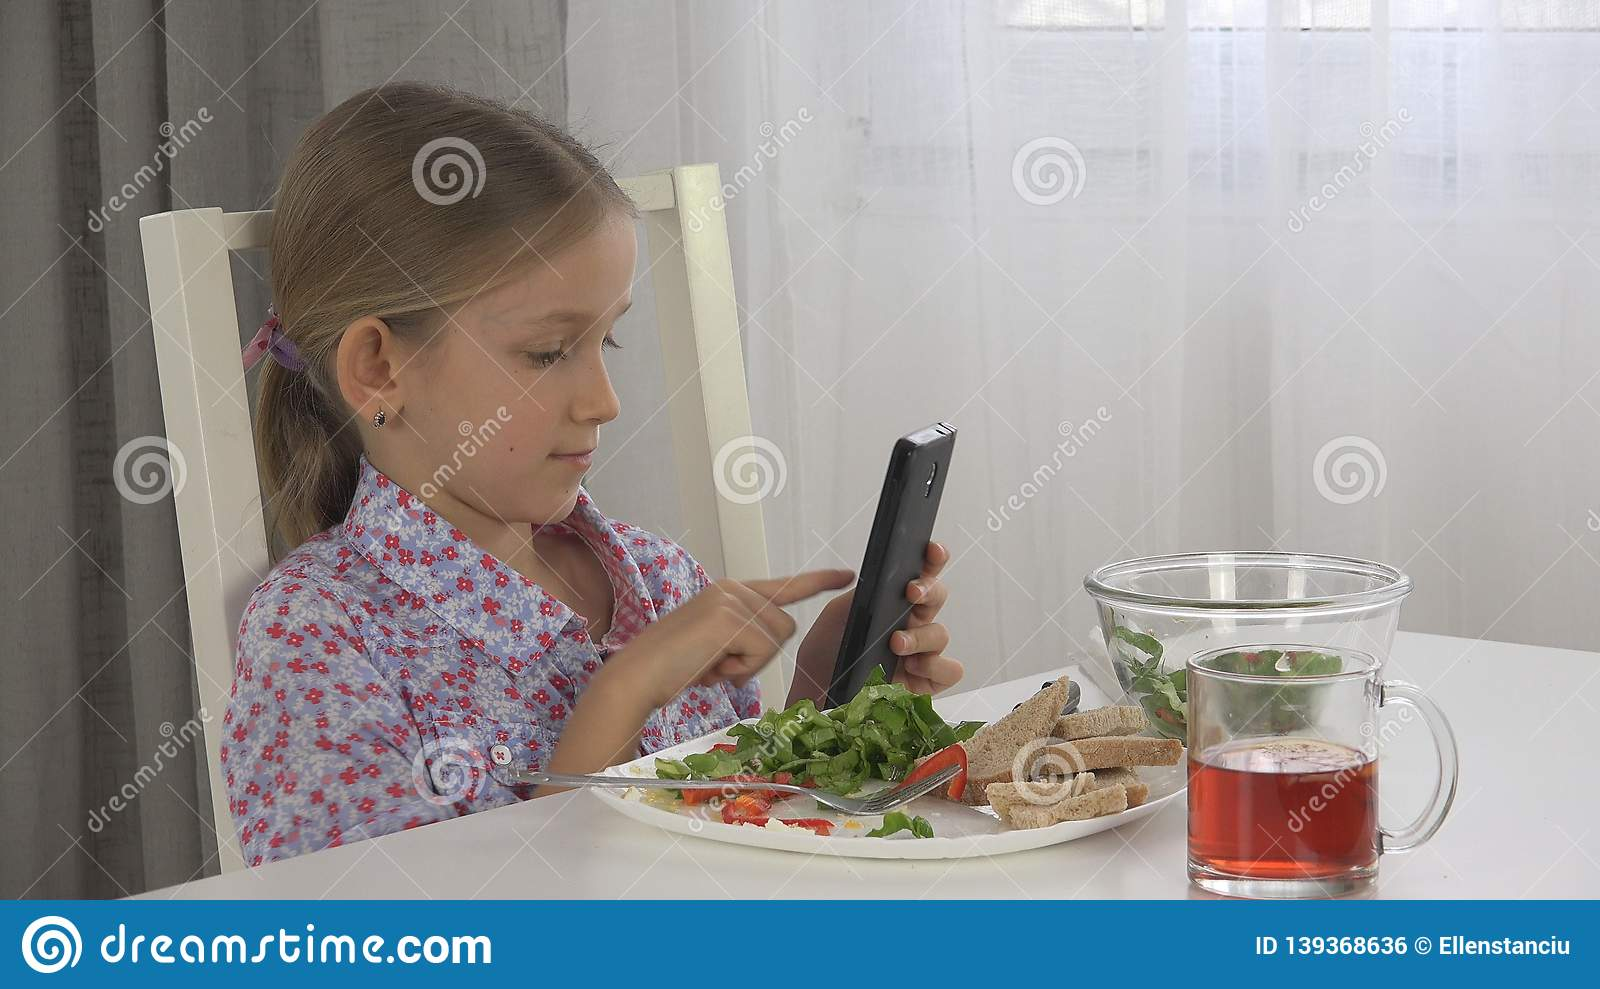 Child Playing Tablet, Kid Use Smartphone Eating Eggs, Salad Lettuce at Breakfast